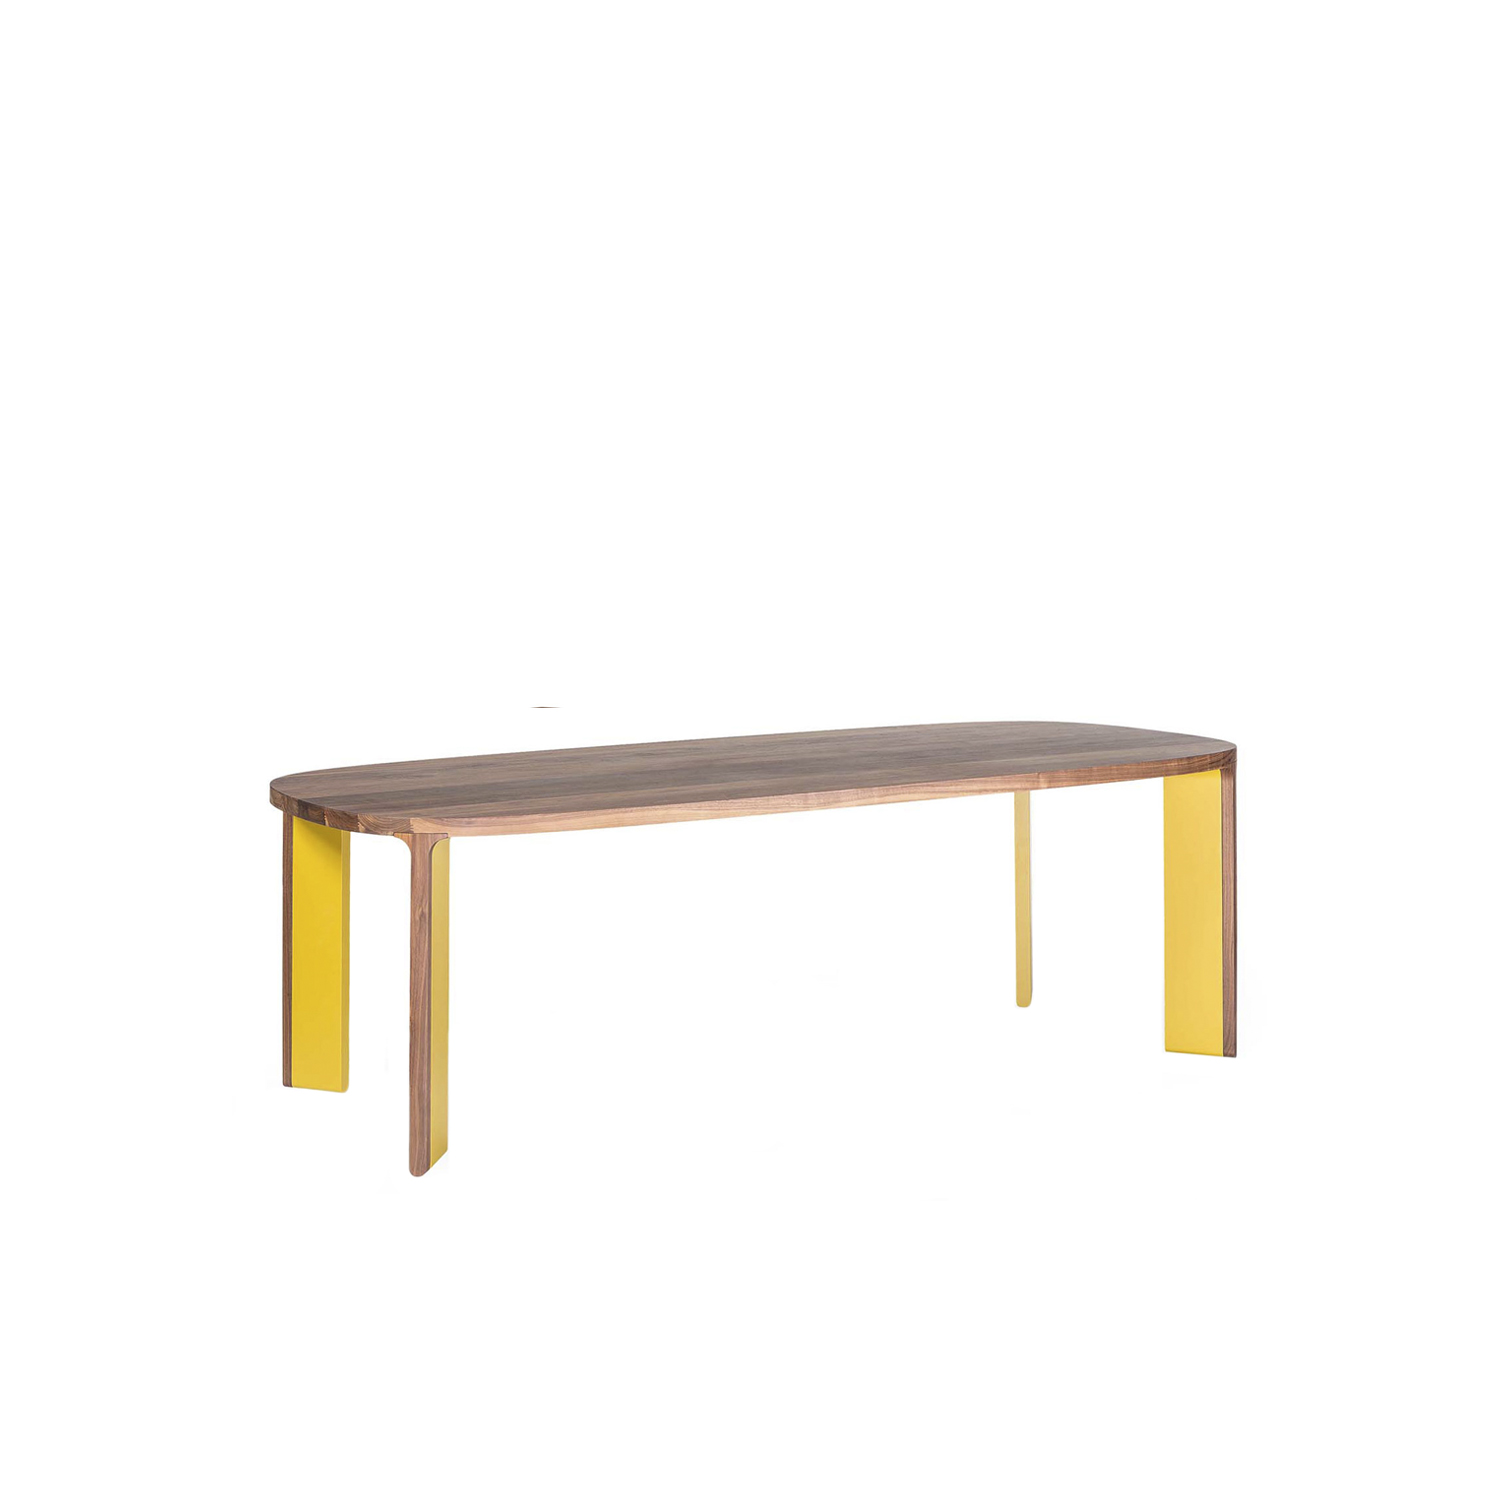 Acro-Bat 002 Dining Table - Table in various sizes. Soap top in wood and legs in two